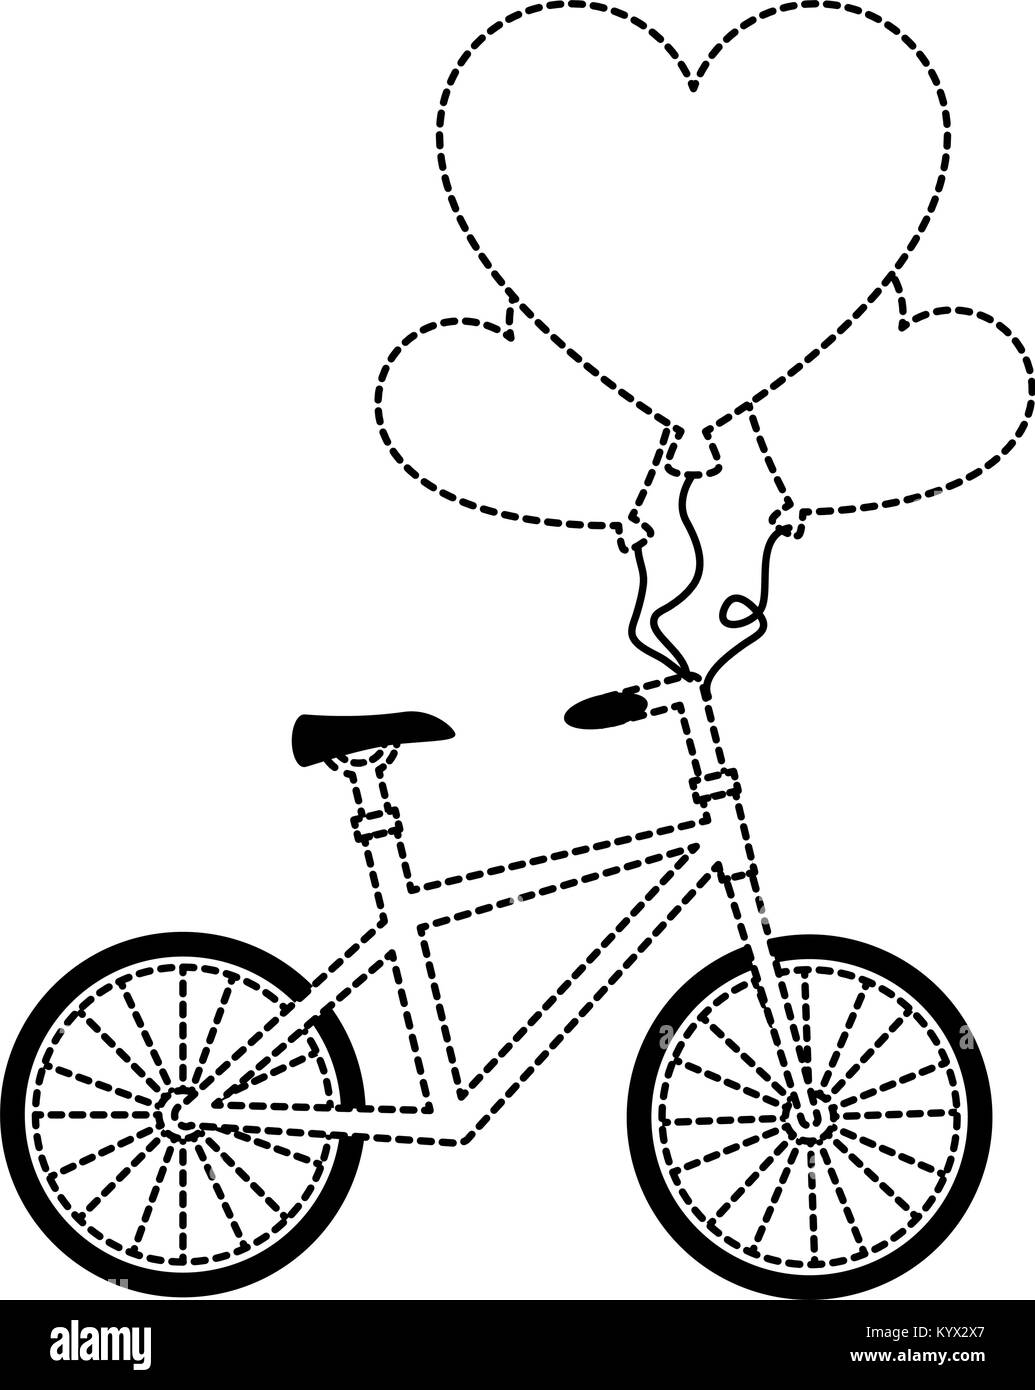 balloons race black and white stock photos images alamy Soap Box Derby Car bicycle with love hearts balloons air vector illustration design stock image